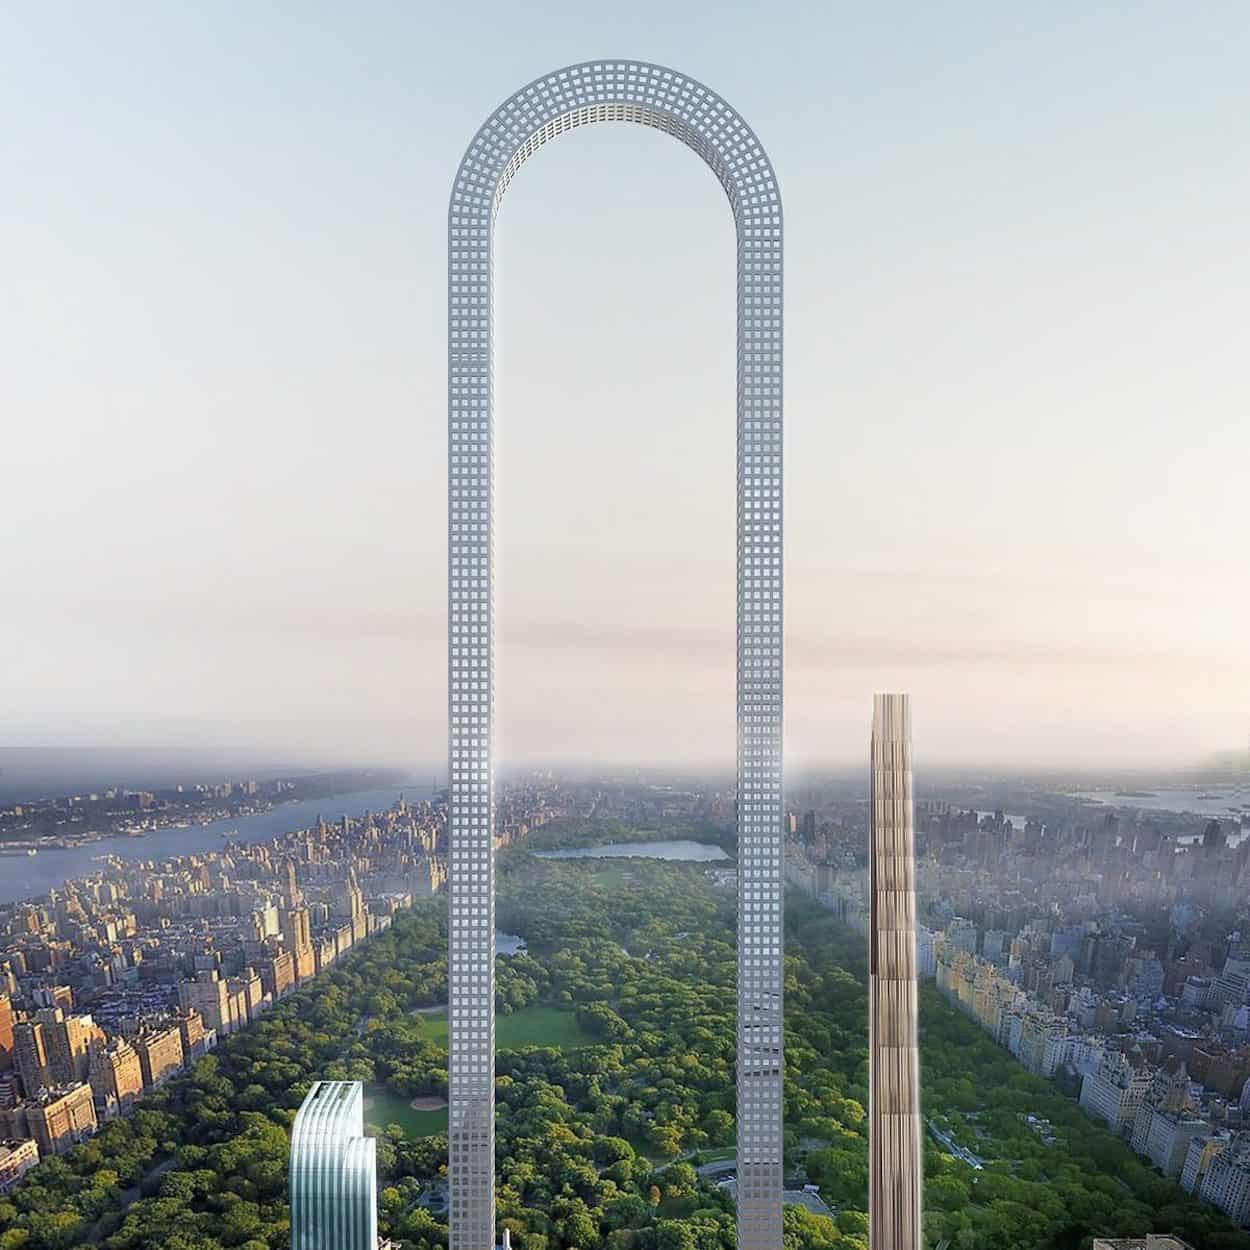 The extraordinary Big Bend condo concept for New York's billionaire's row, as conceptualised by Oiio studio